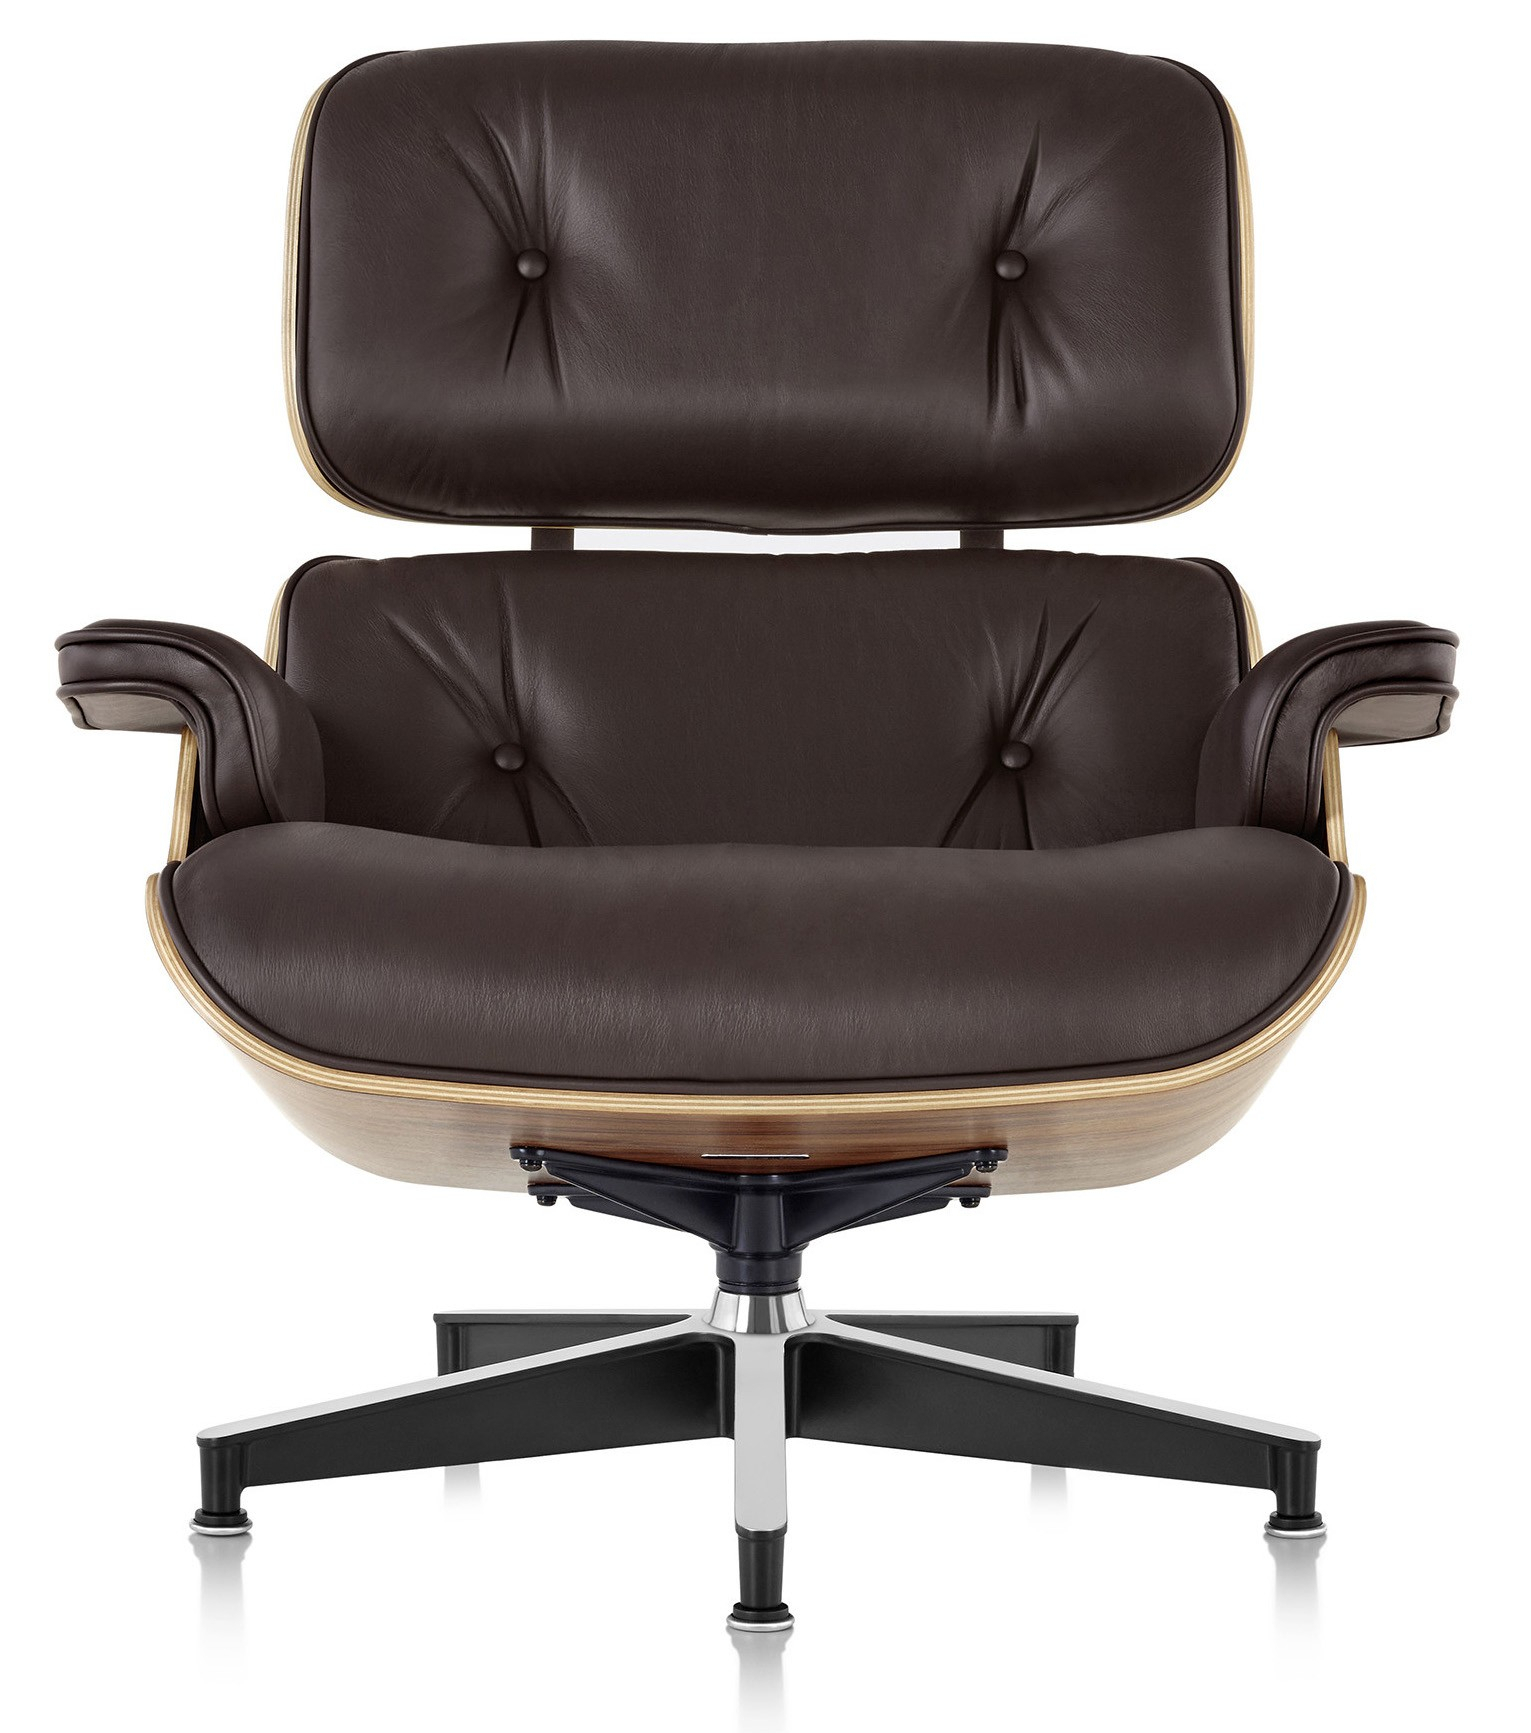 Herman Miller Eames® Lounge Chair - Gr Shop Canada with Chadwick Gunmetal Swivel Chairs